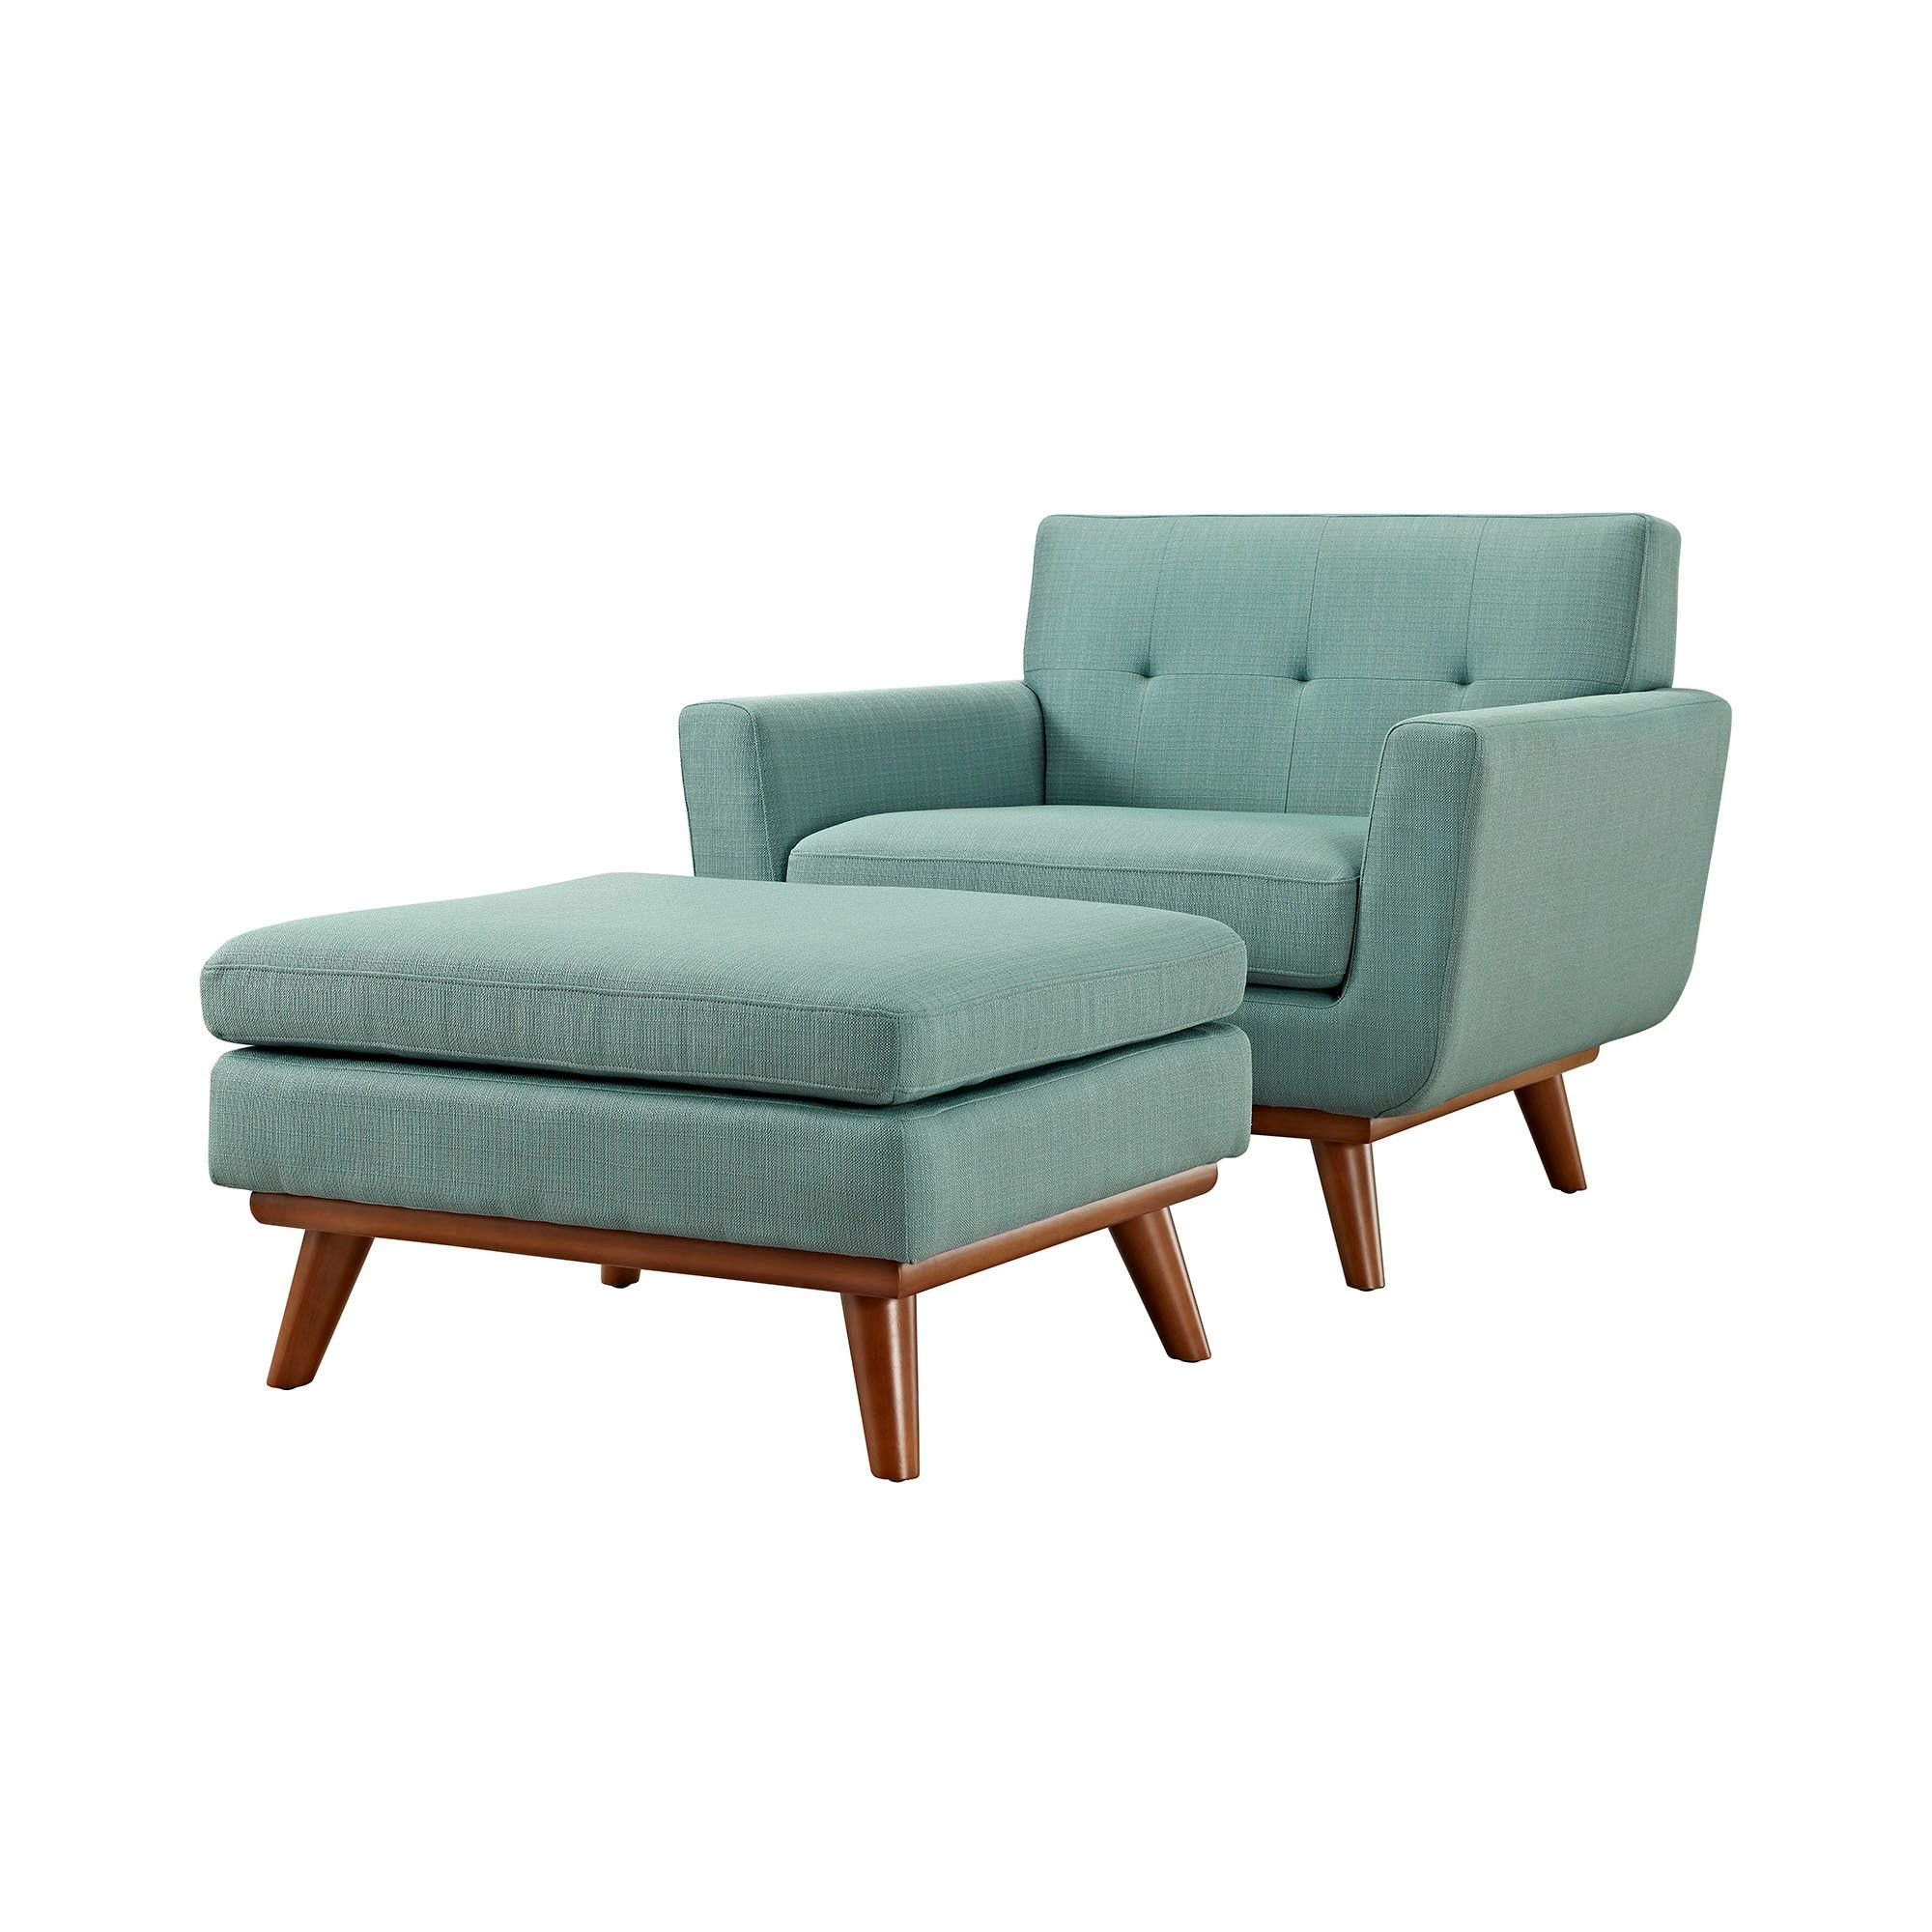 Armchair And Ottoman Set With Favorite Michalak Cheswood Armchairs And Ottoman (View 9 of 20)